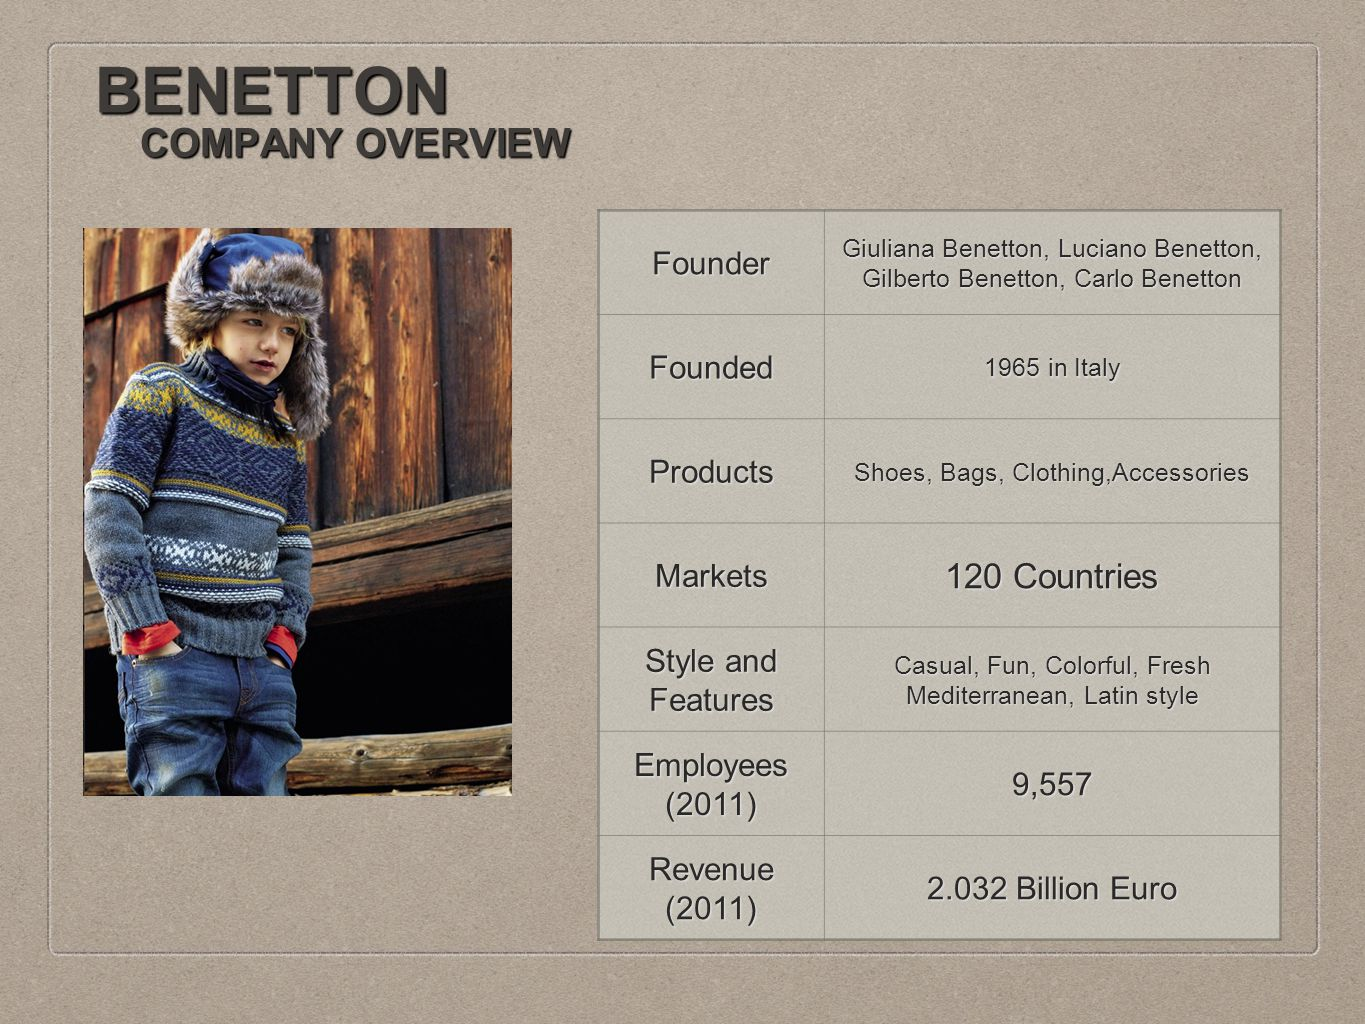 the benetton supply chain 17 alper teki̇n the result • the dual supply chain helped benetton offer new products to its customers on time • benetton could maintain the sales momentum even afte the season by minimizing the time to market • the dual supply chain offered product based on demand pull 18.